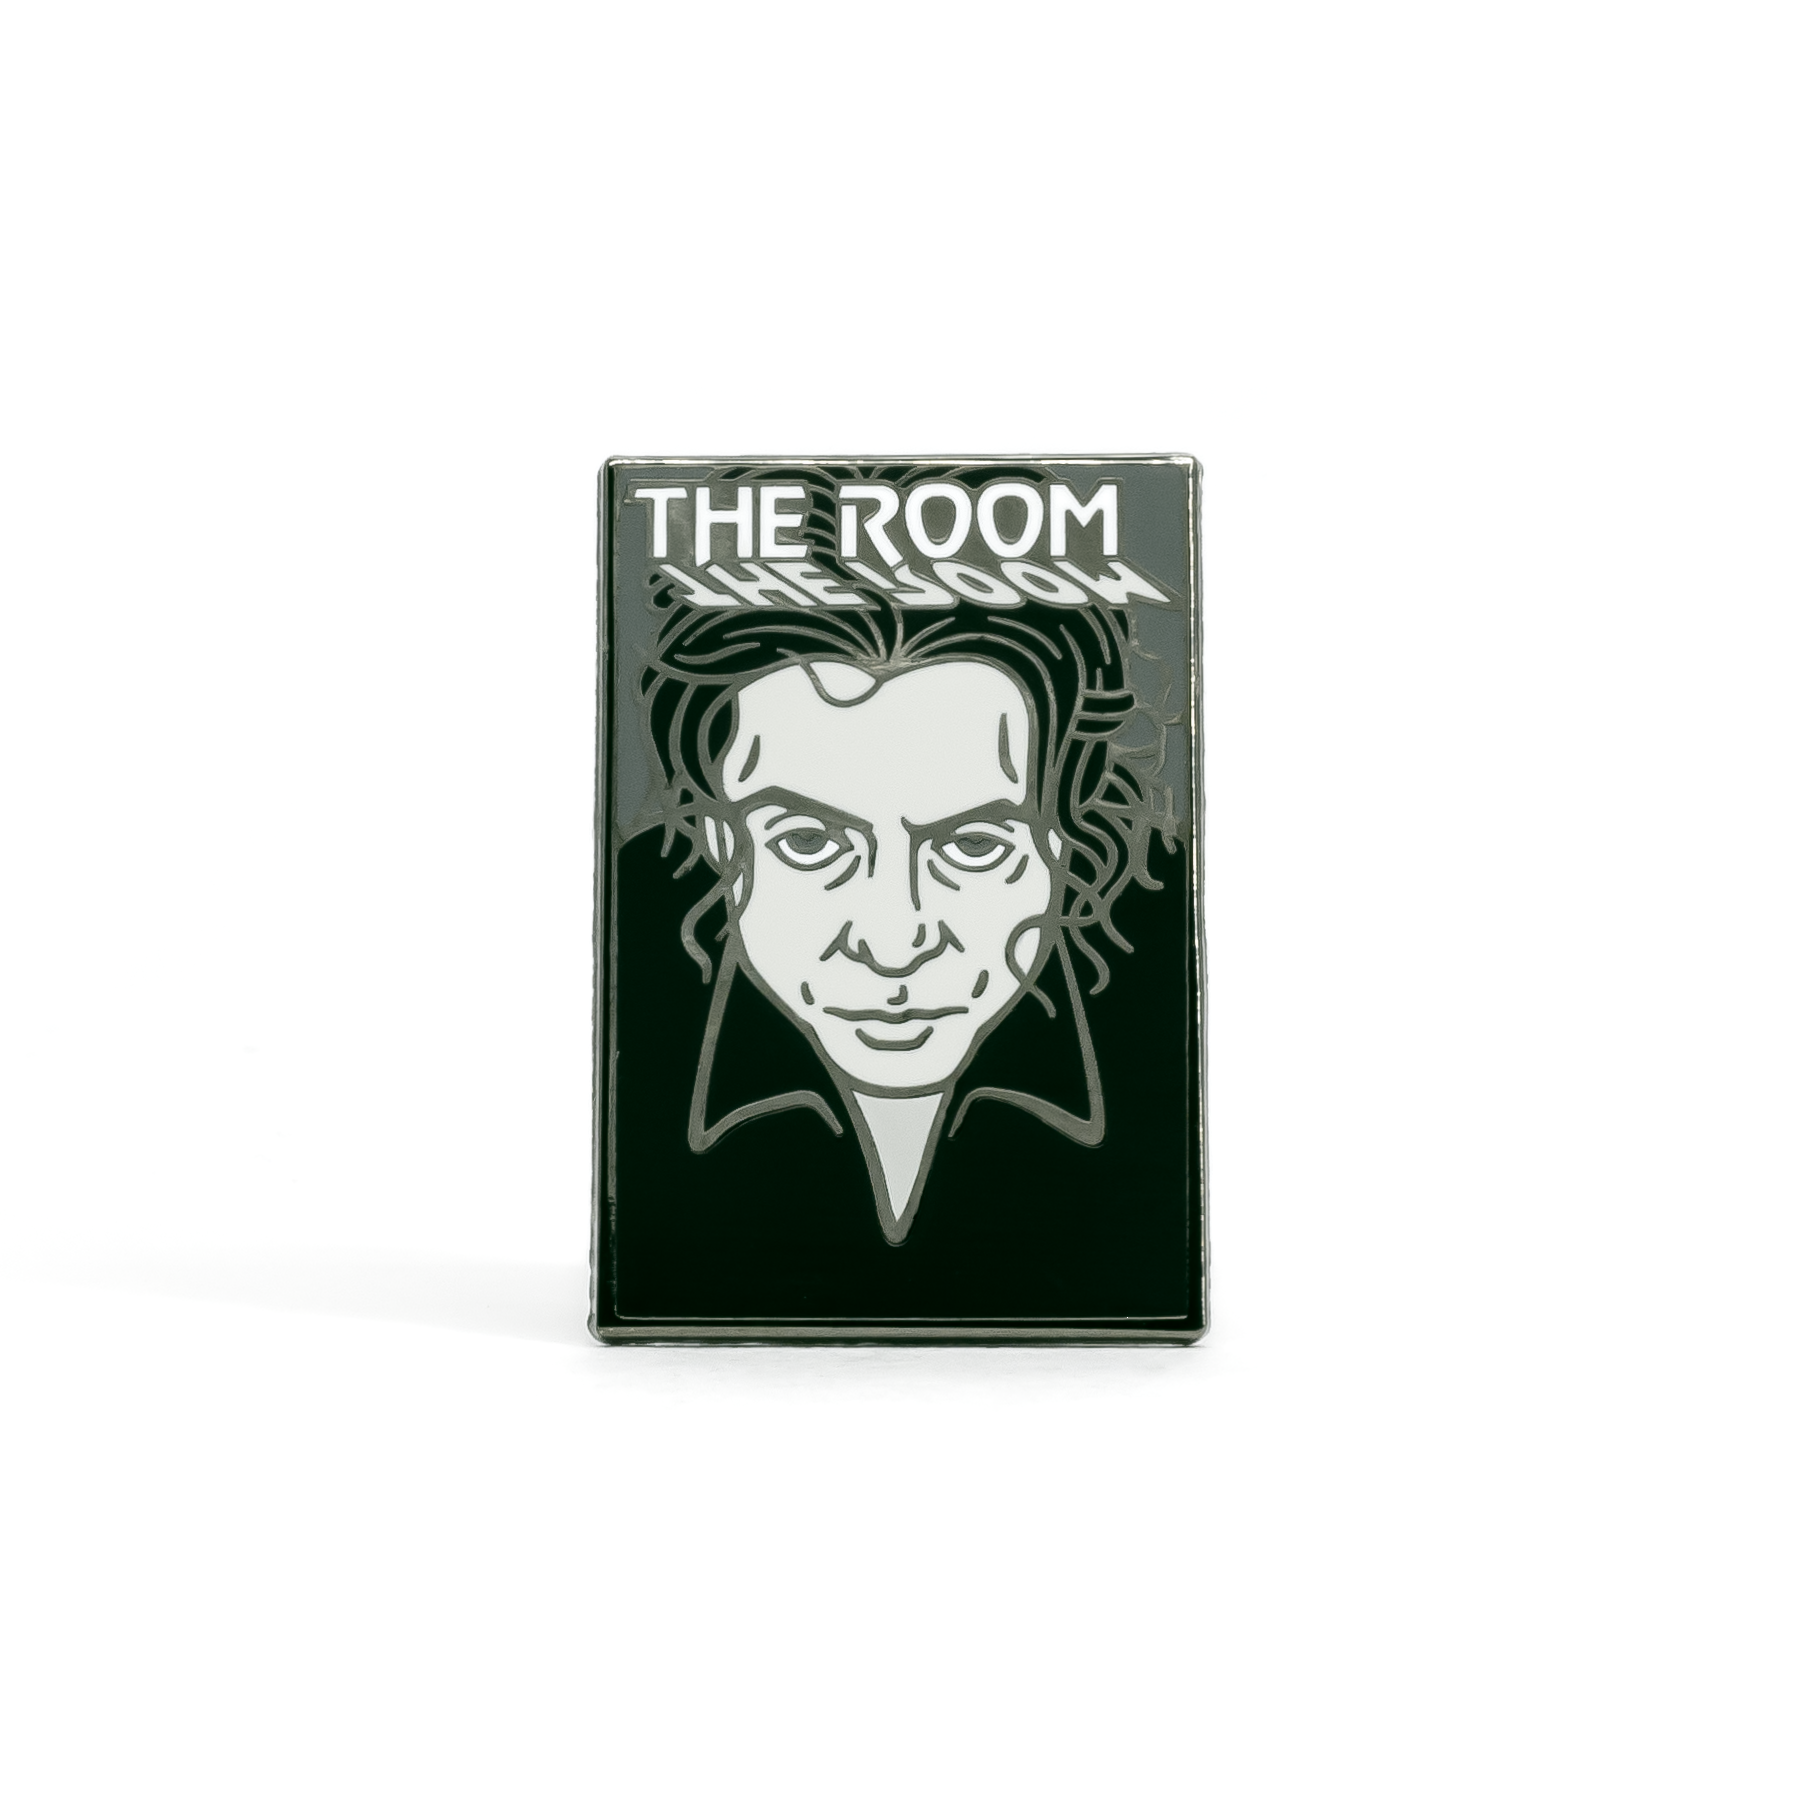 The Room enamel pin